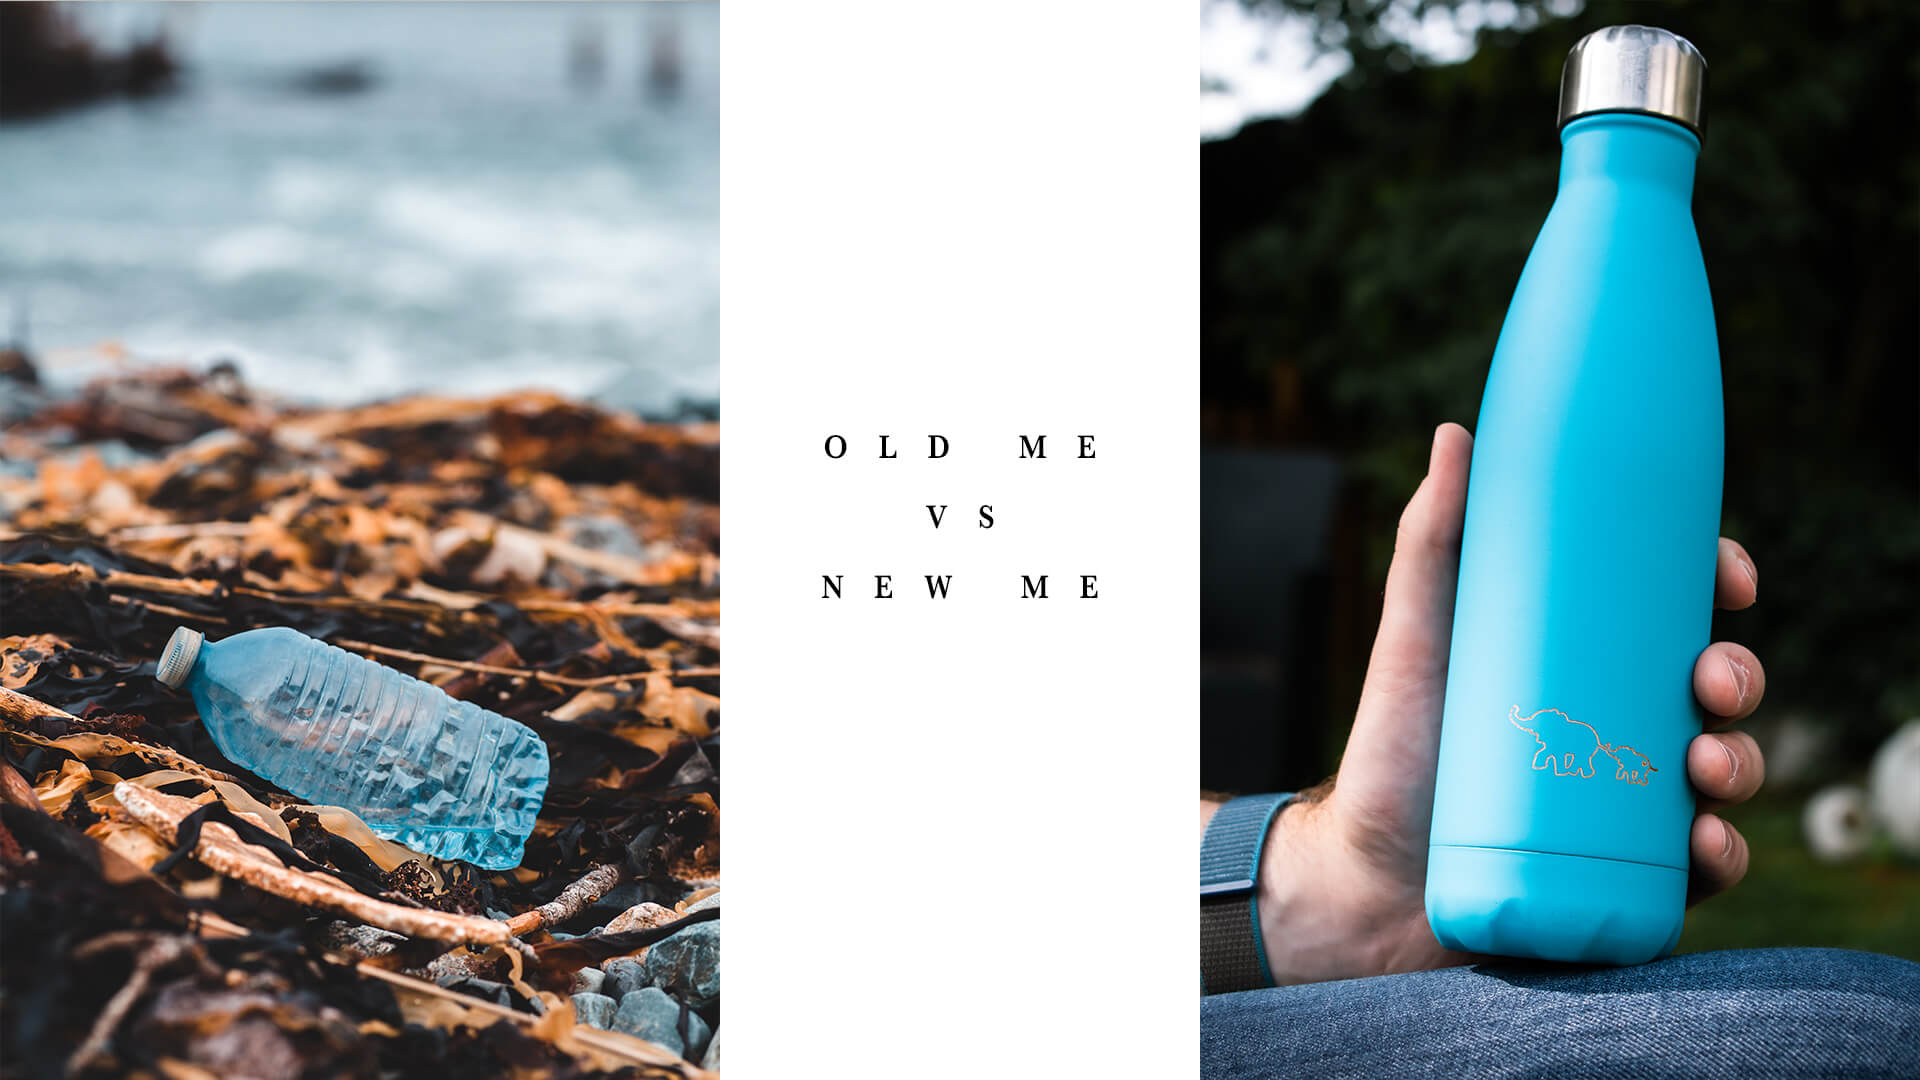 Plastic bottle pollution and environmentally friendly reusable water bottle